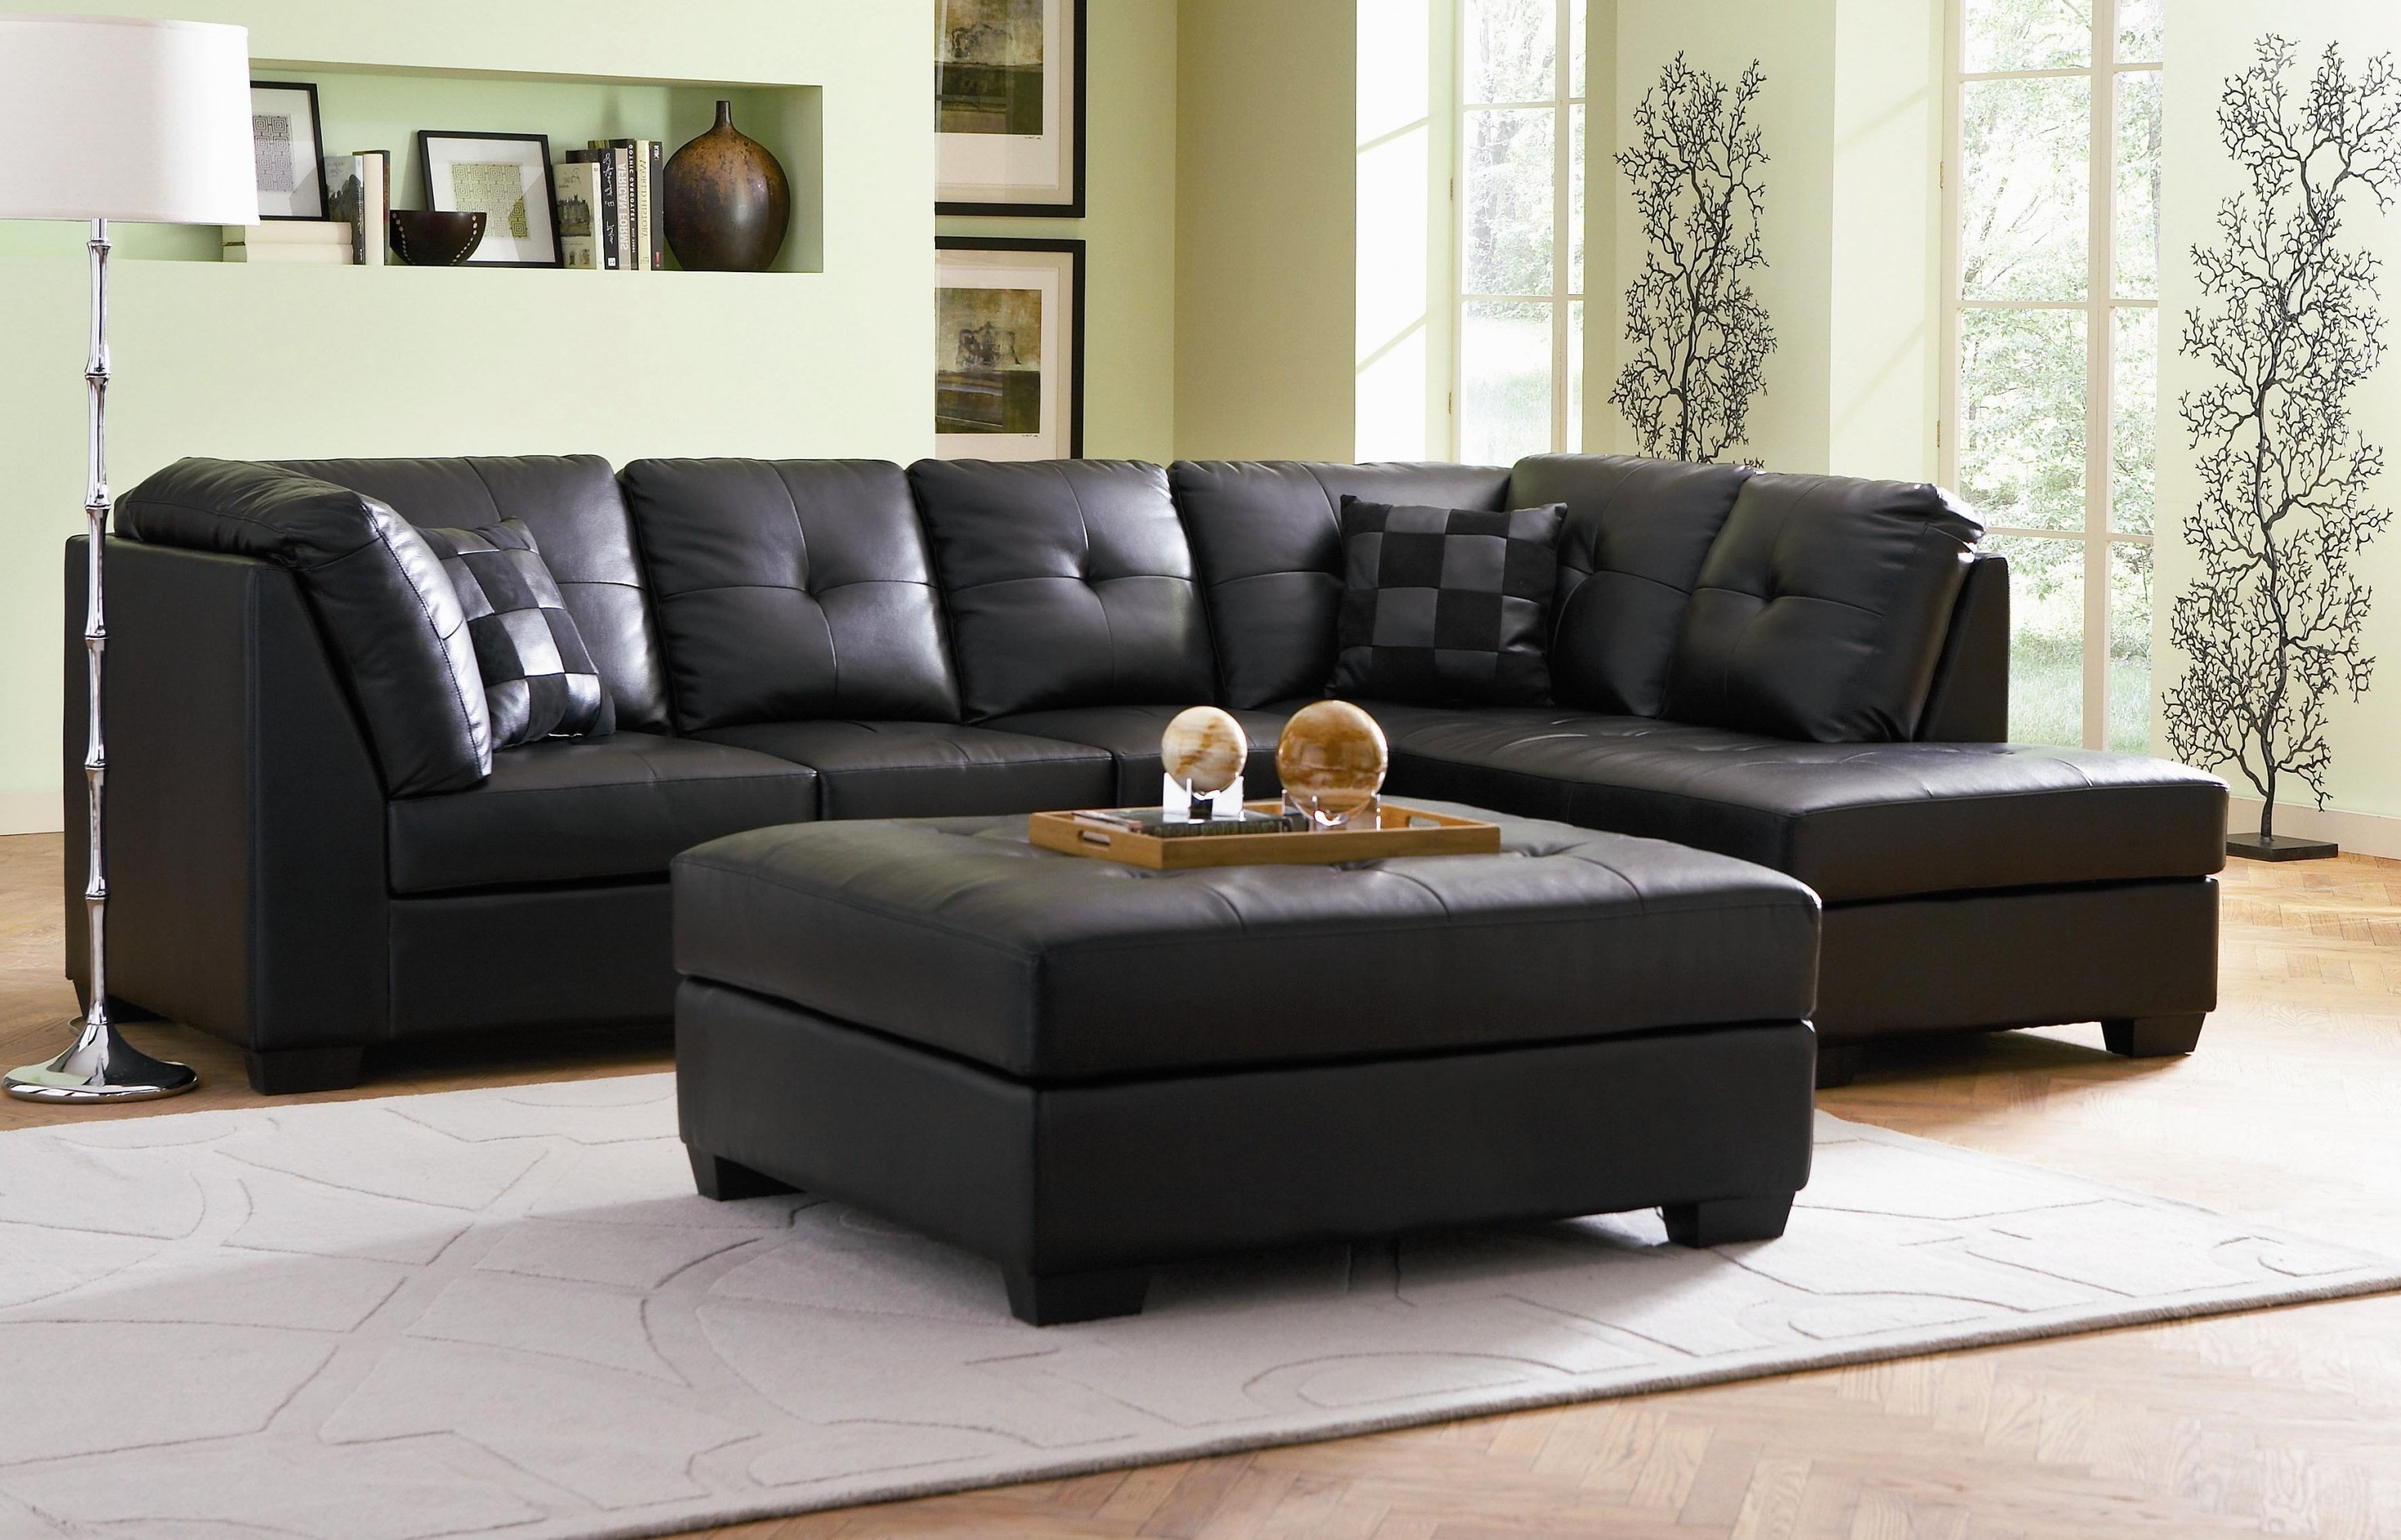 Recent Black Leather Modular Sectional Sofa With Ikea Ottoman With Regard For Leather Modular Sectional Sofas (View 2 of 15)